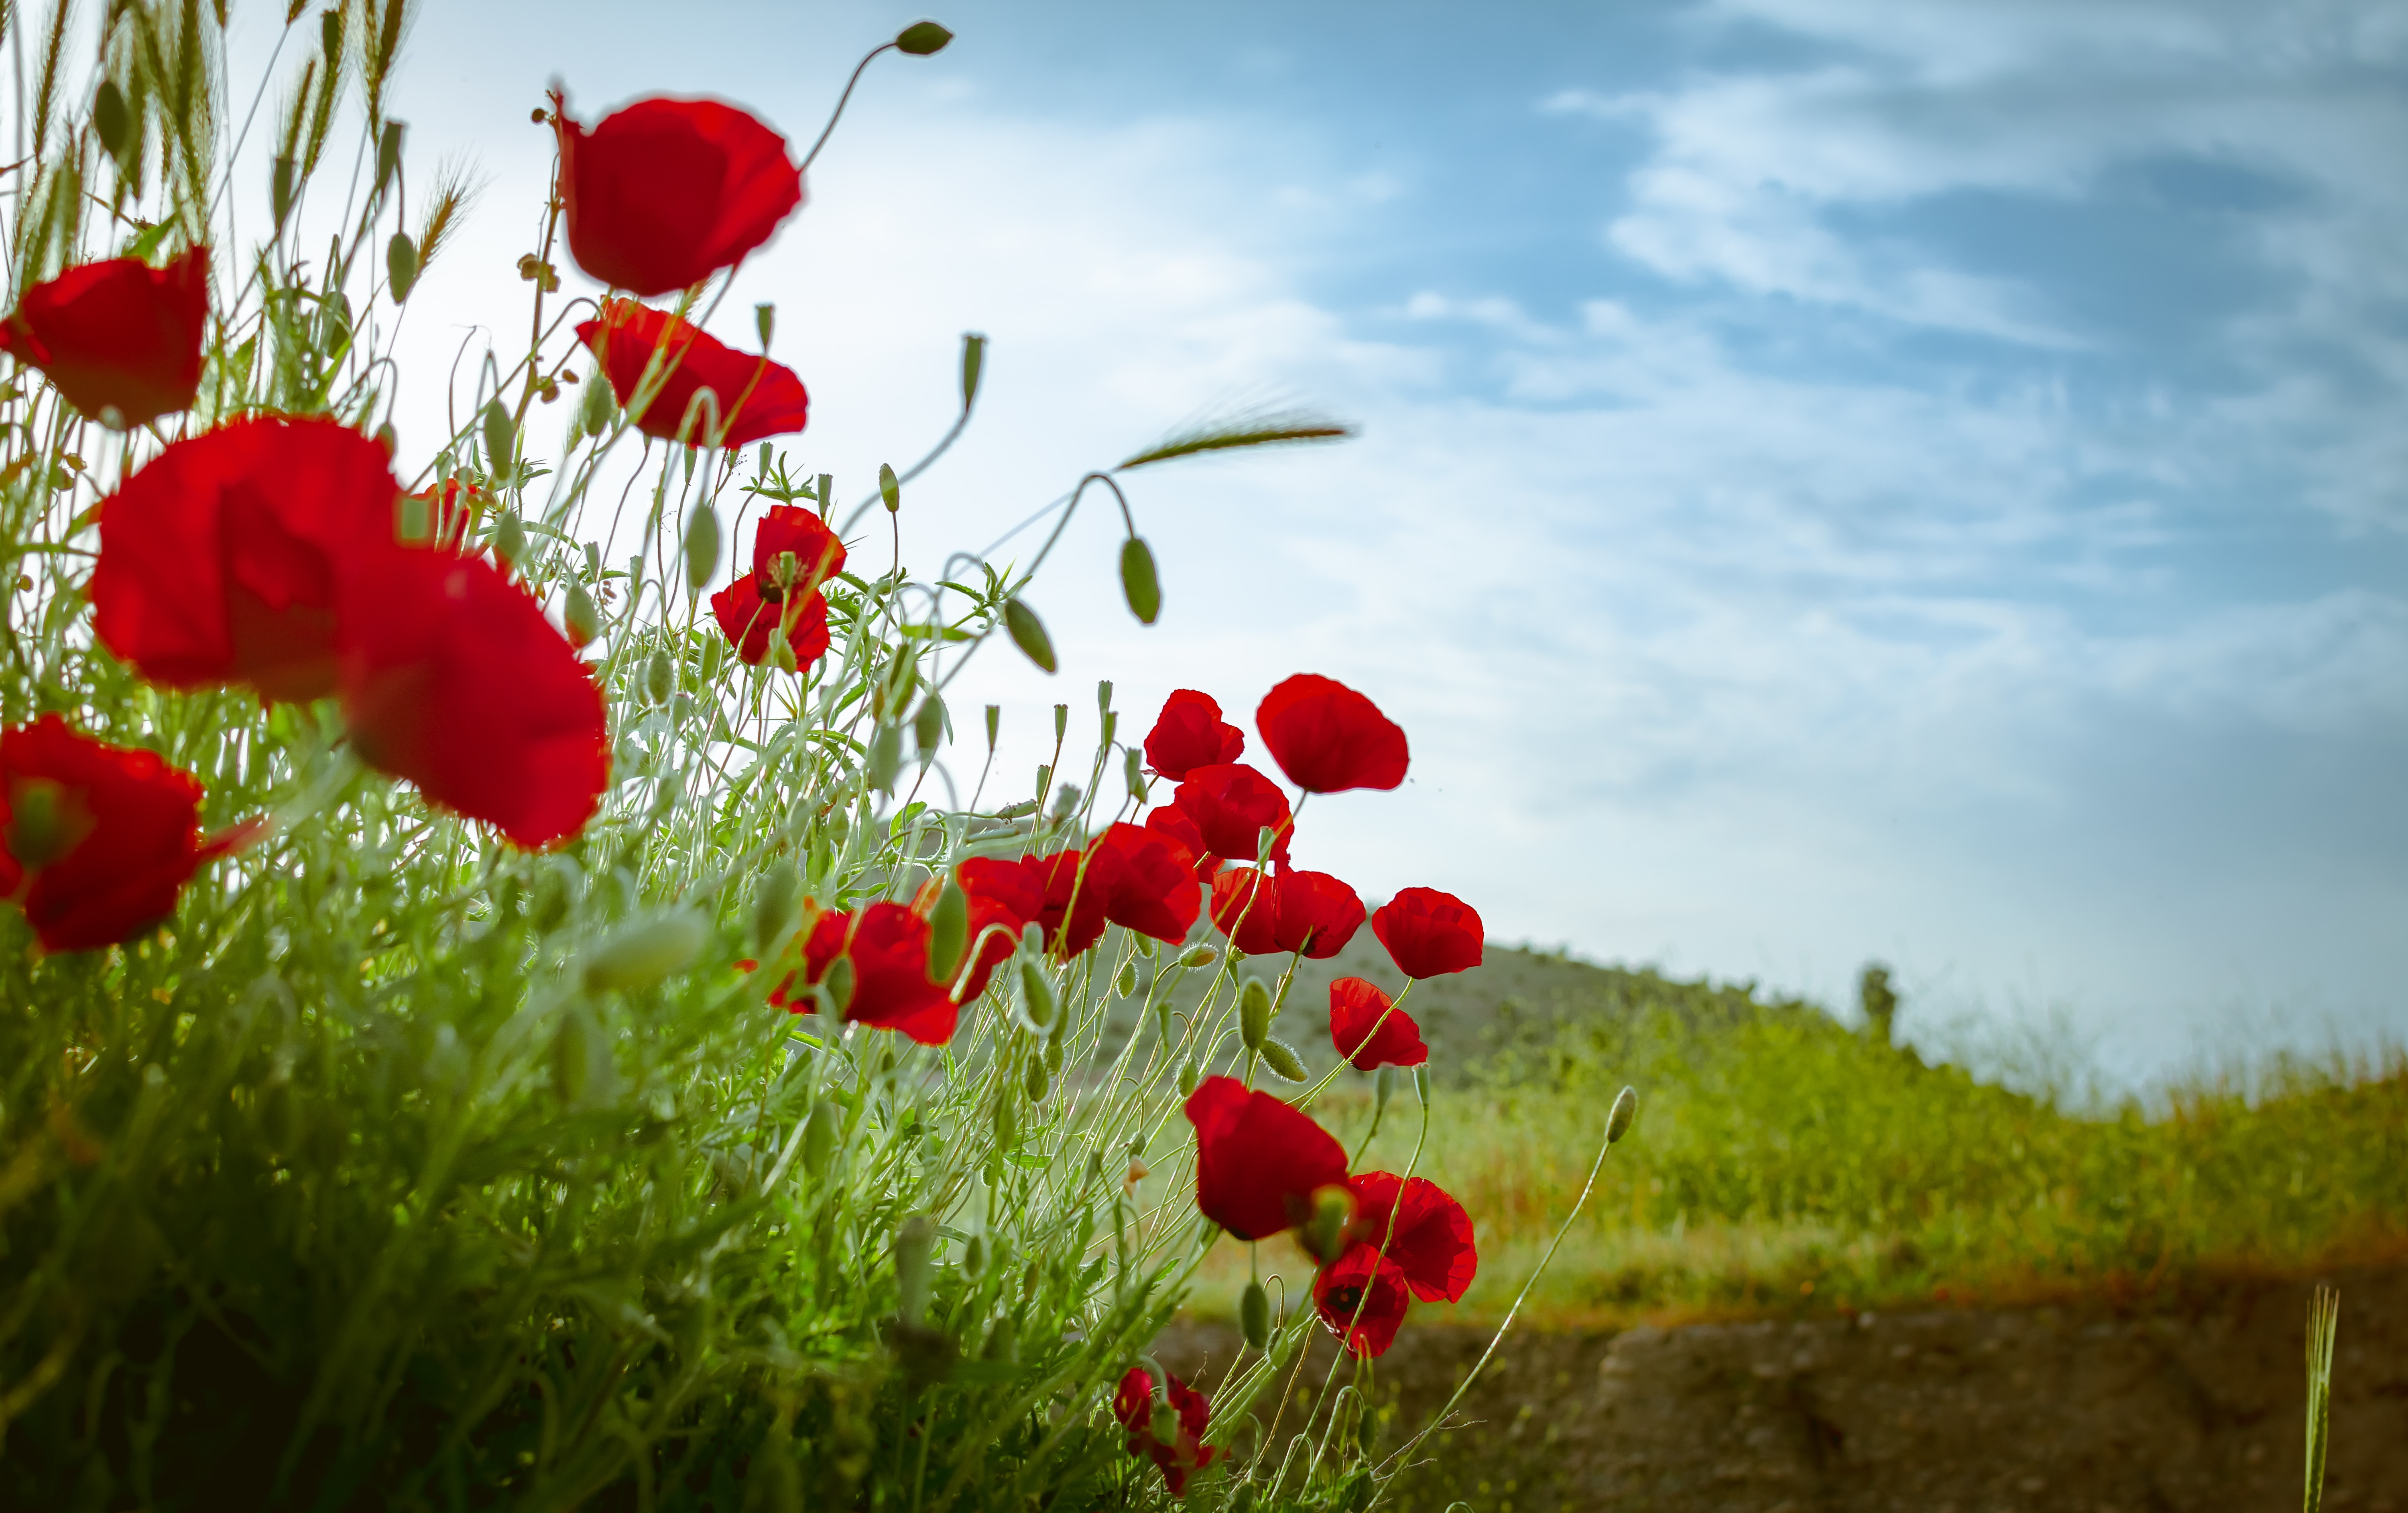 red poppy flowers during daytime